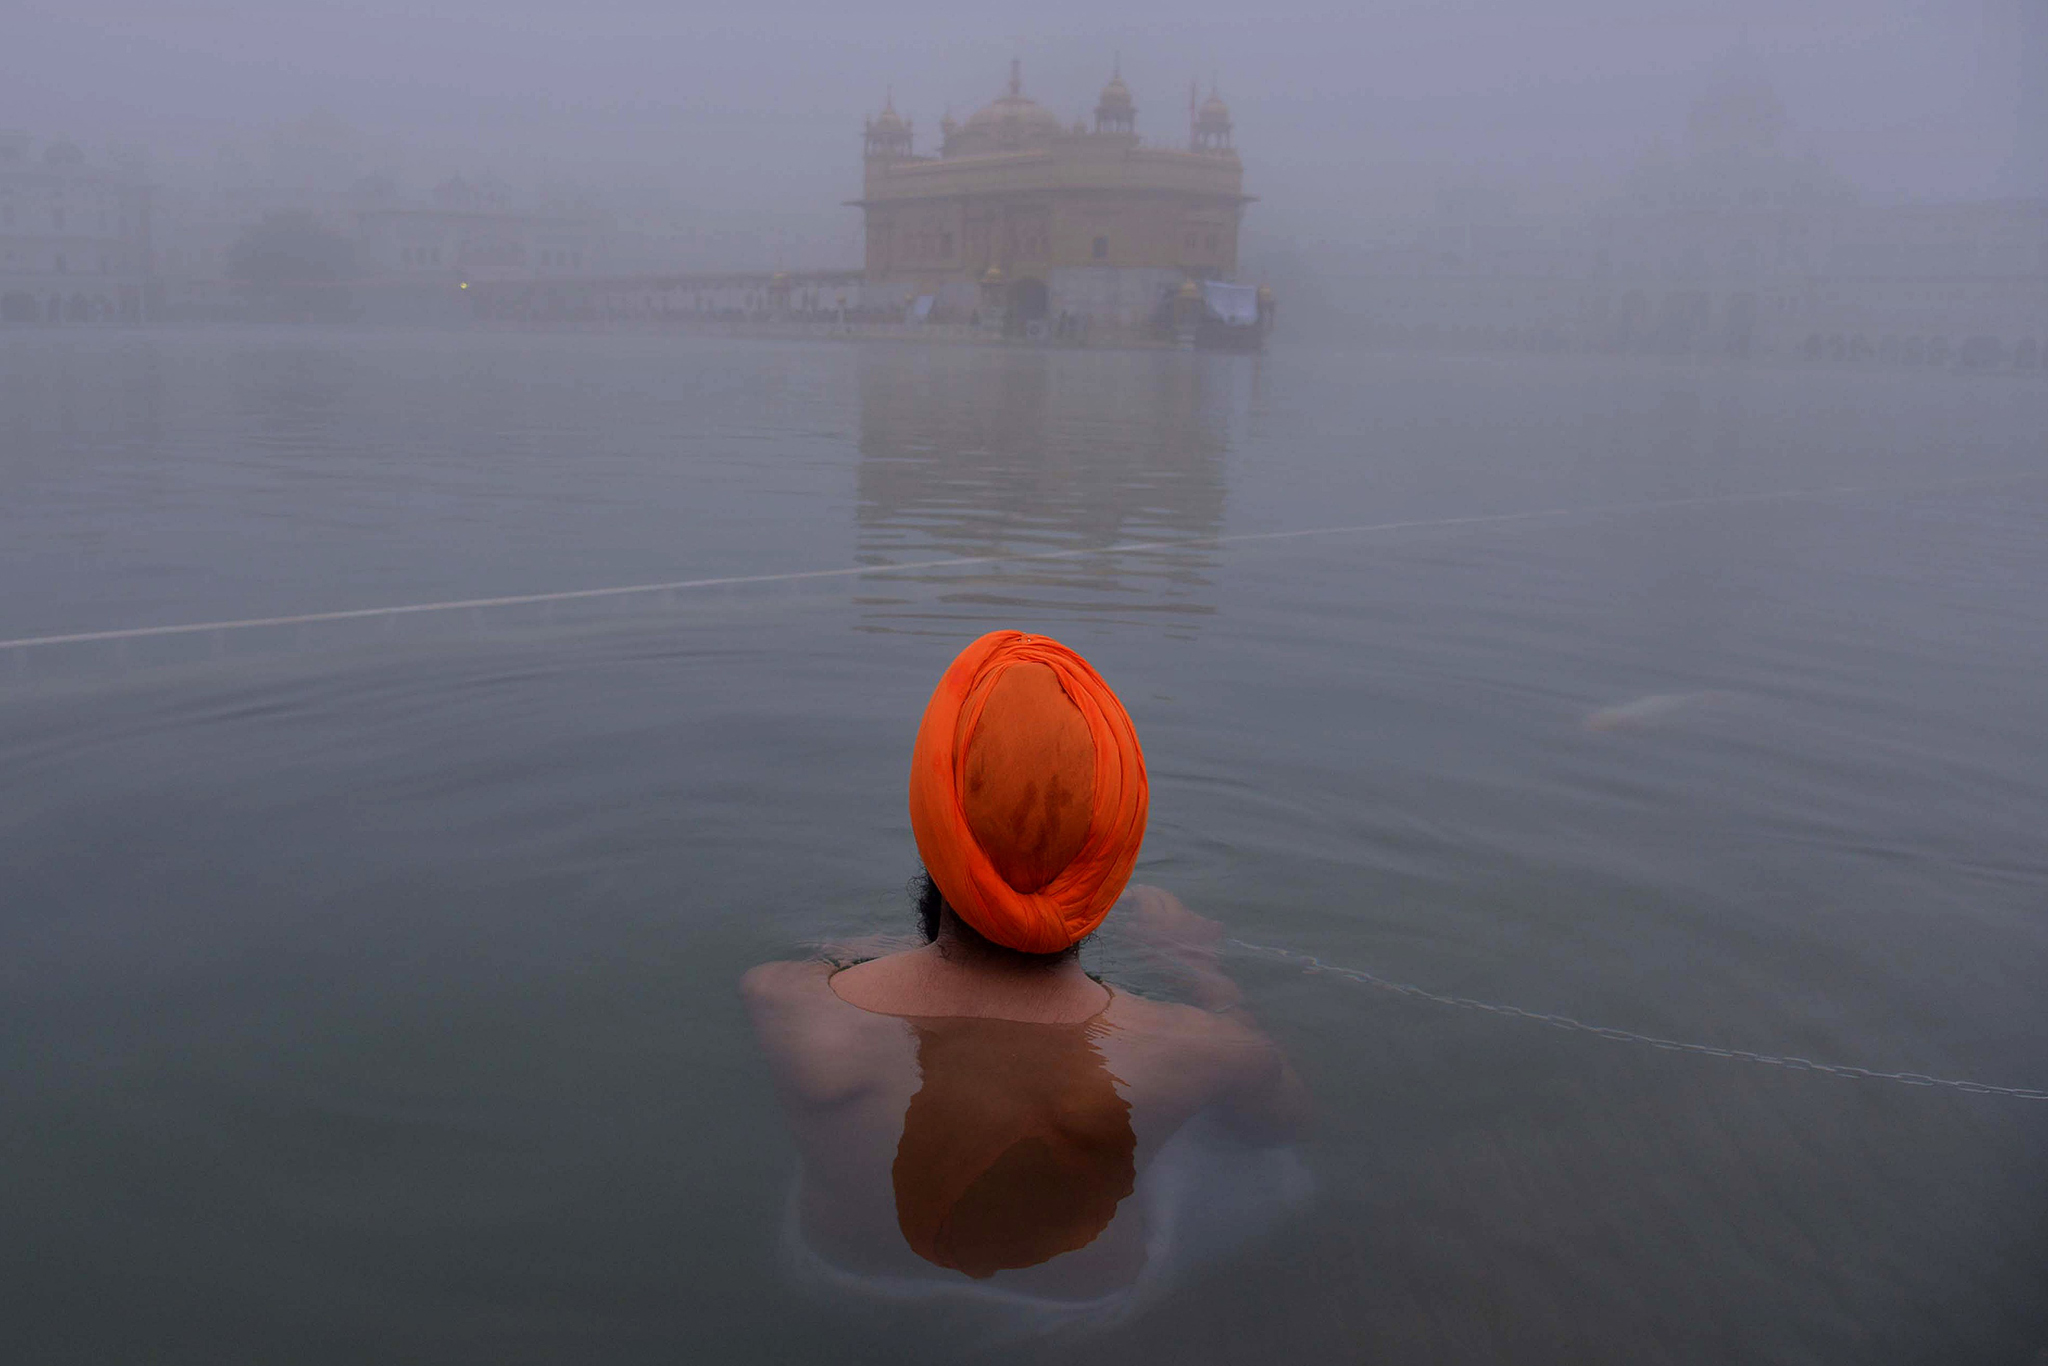 An Indian Sikh devotee takes a dip in the holy sarover (water tank) during dense fog at the Golden Temple in Amritsar